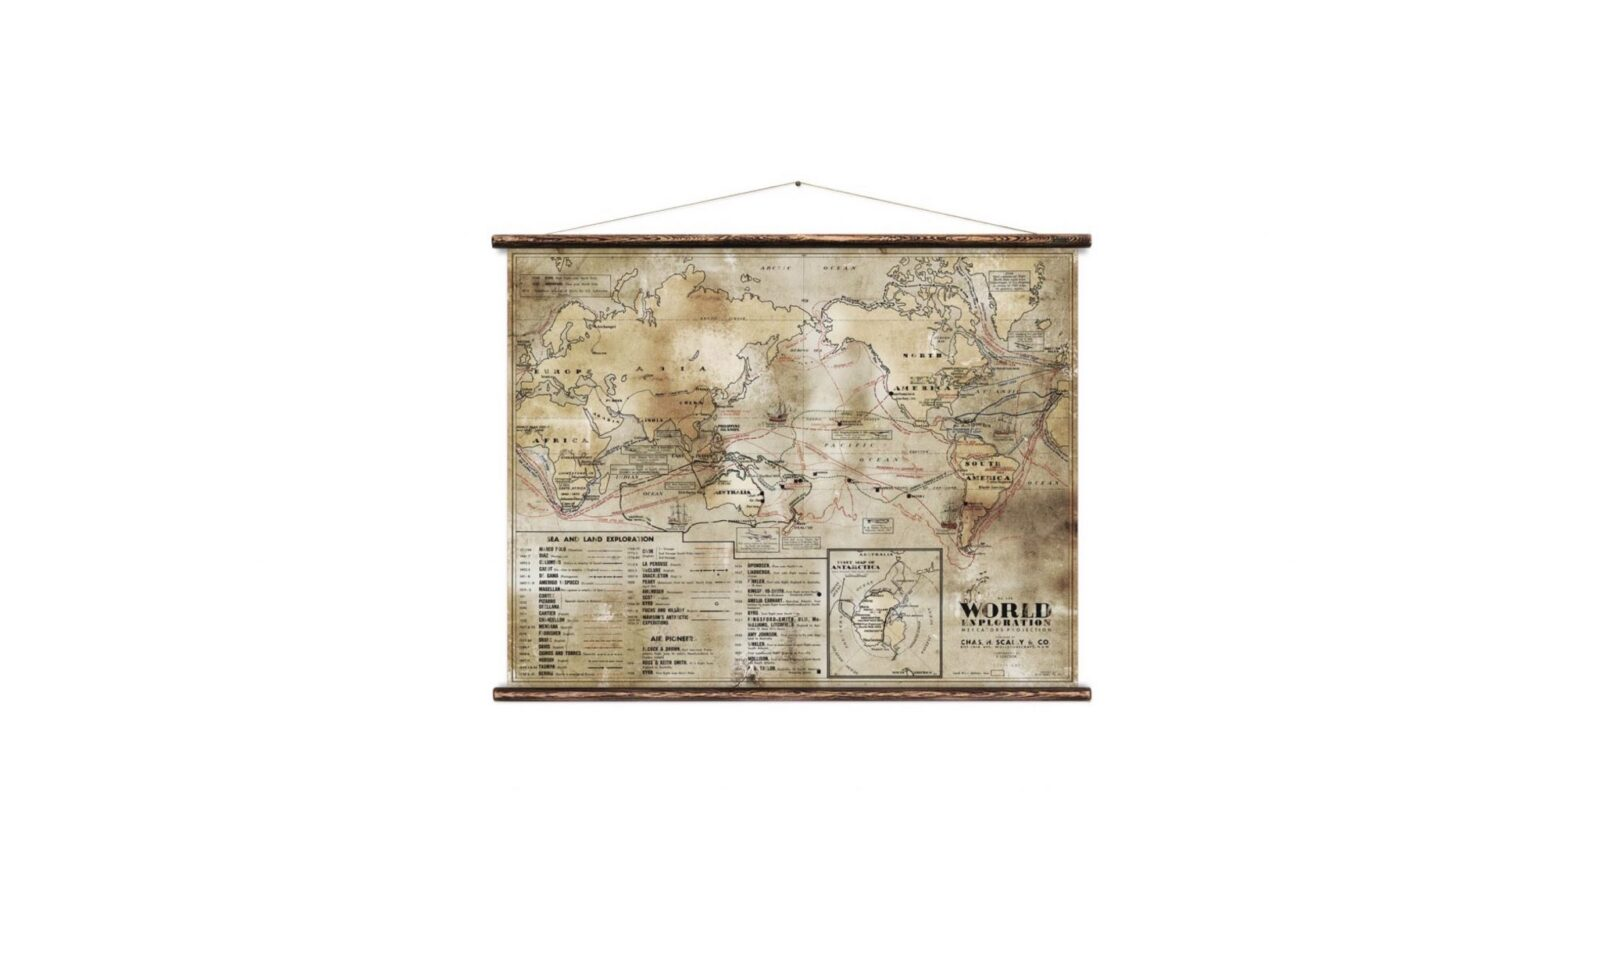 World Exploration Map Erstwhile 1600x955 - World Exploration Map by Erstwhile